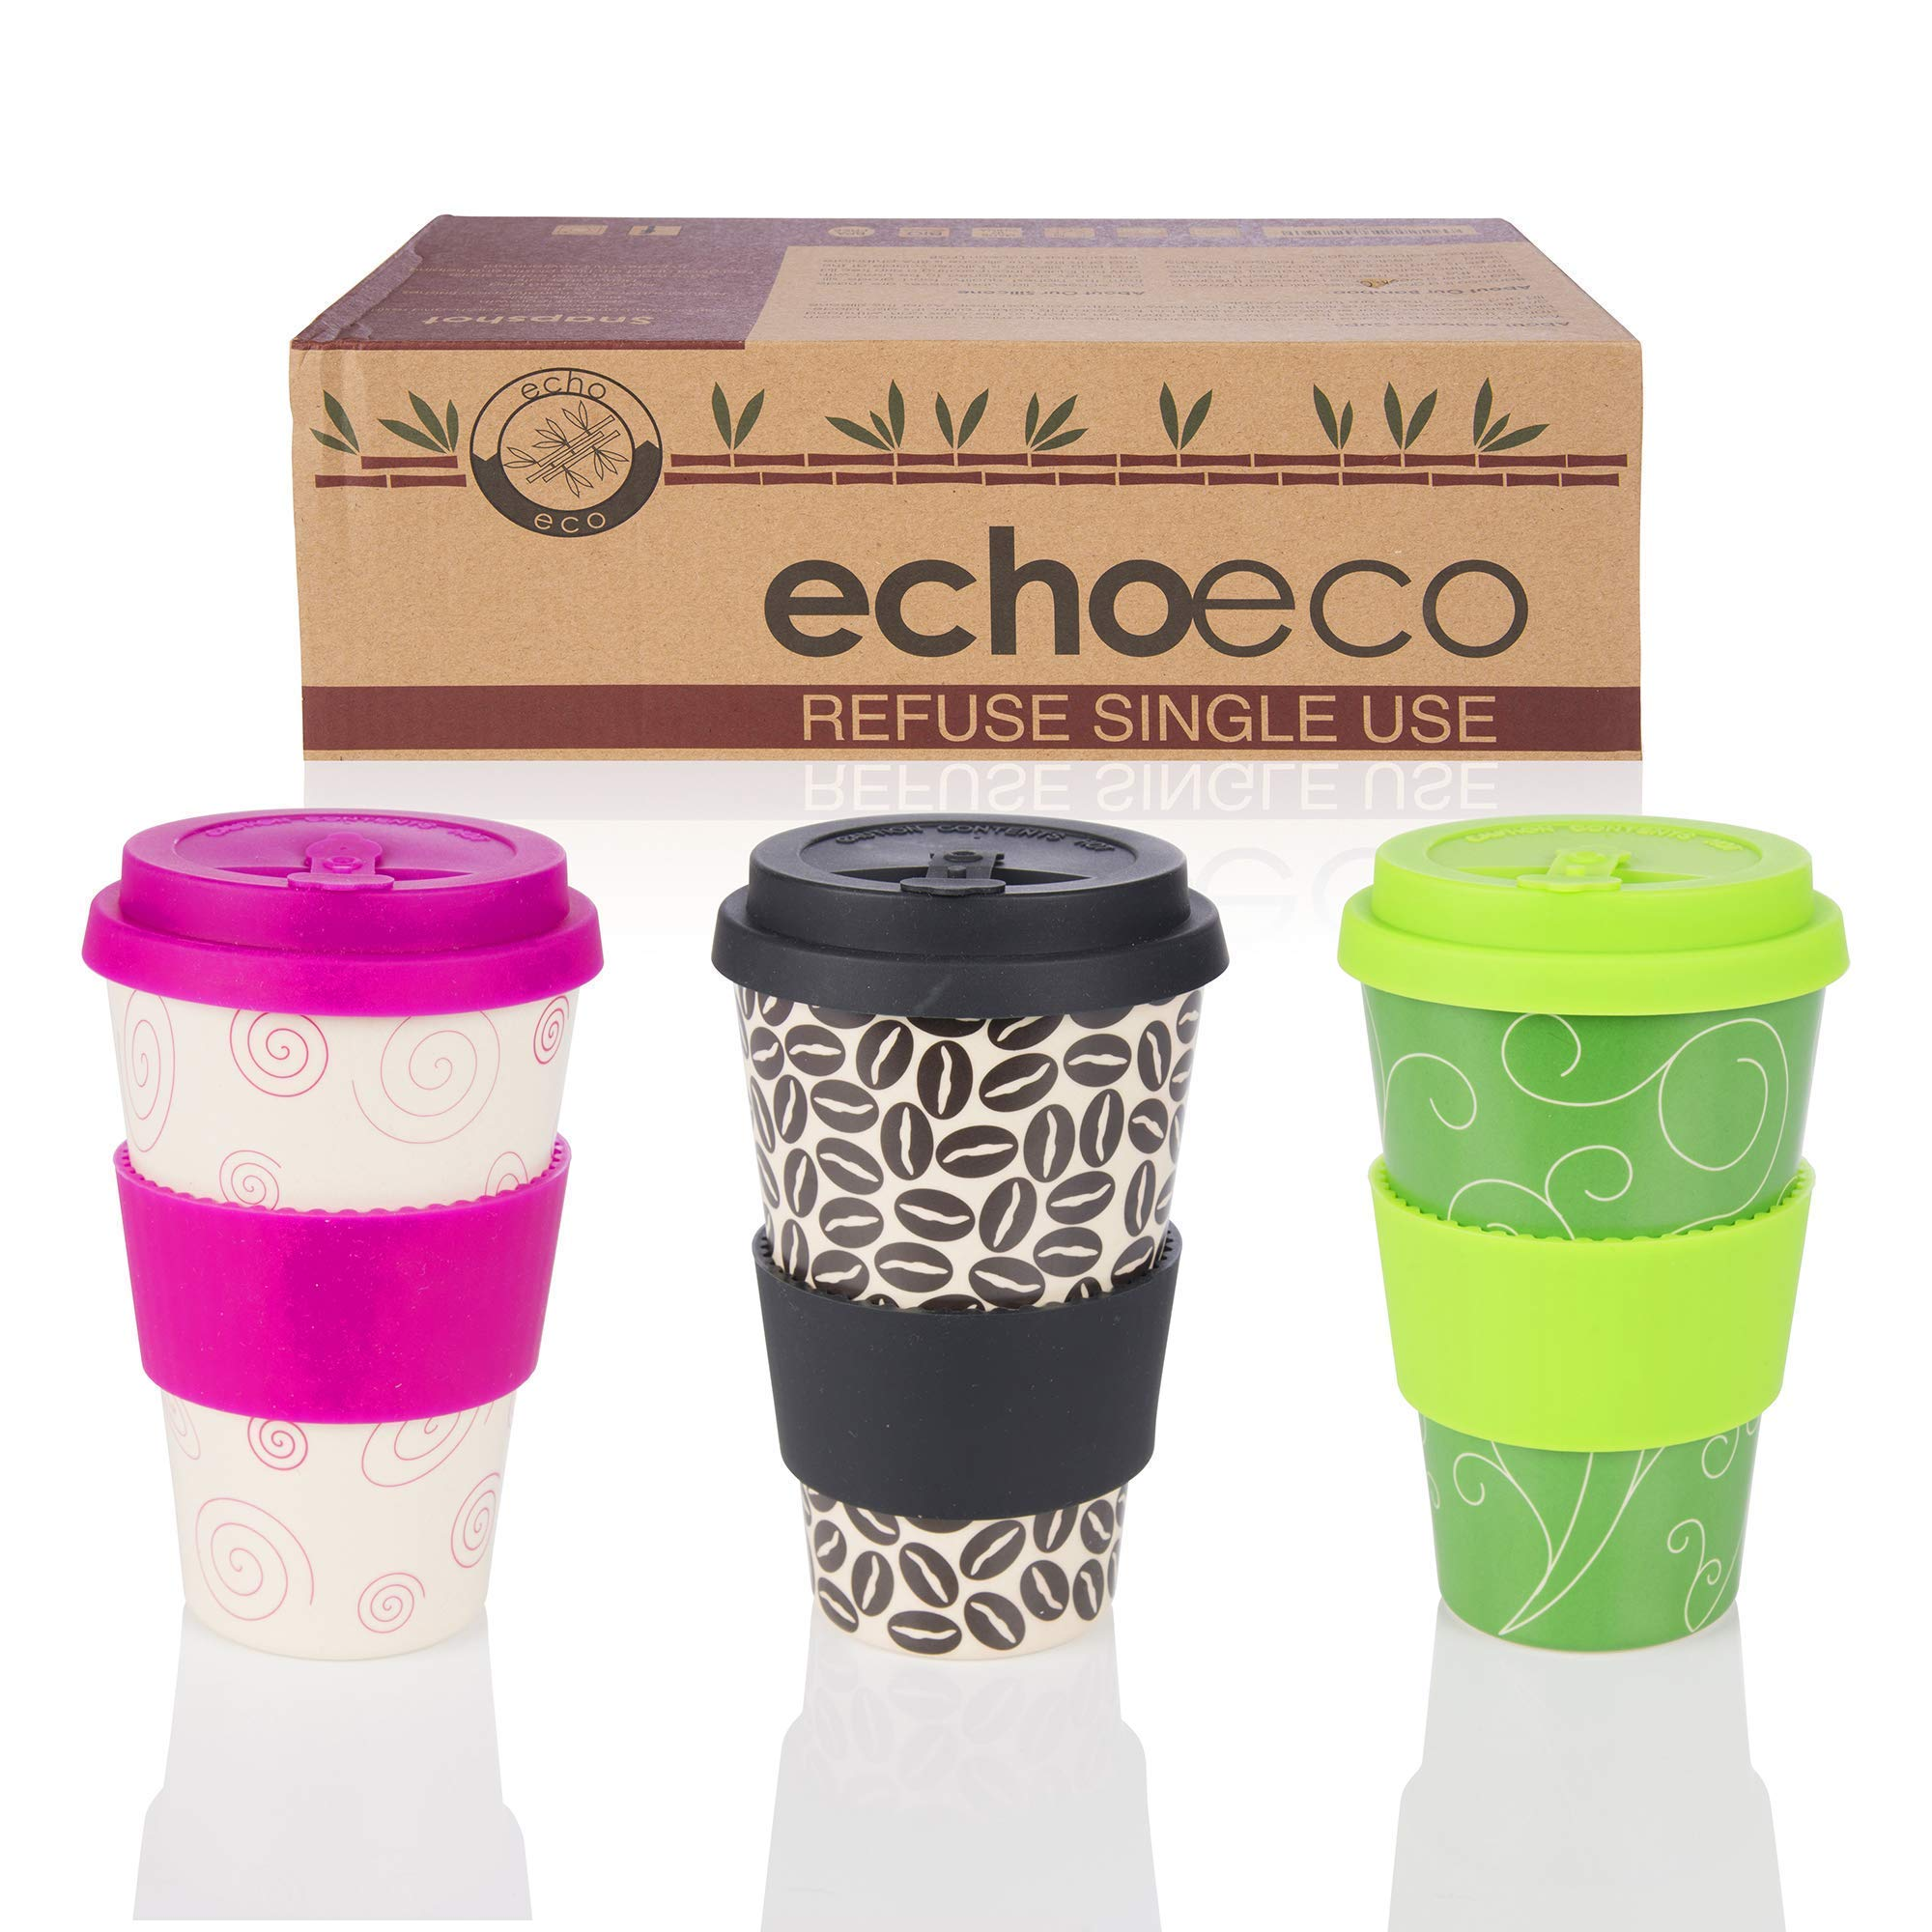 Details about PK OF 2 ECO CUPS & LID IDEAL FOR REPLACING DISPOSABLE SHOP COFFEE CUPS!